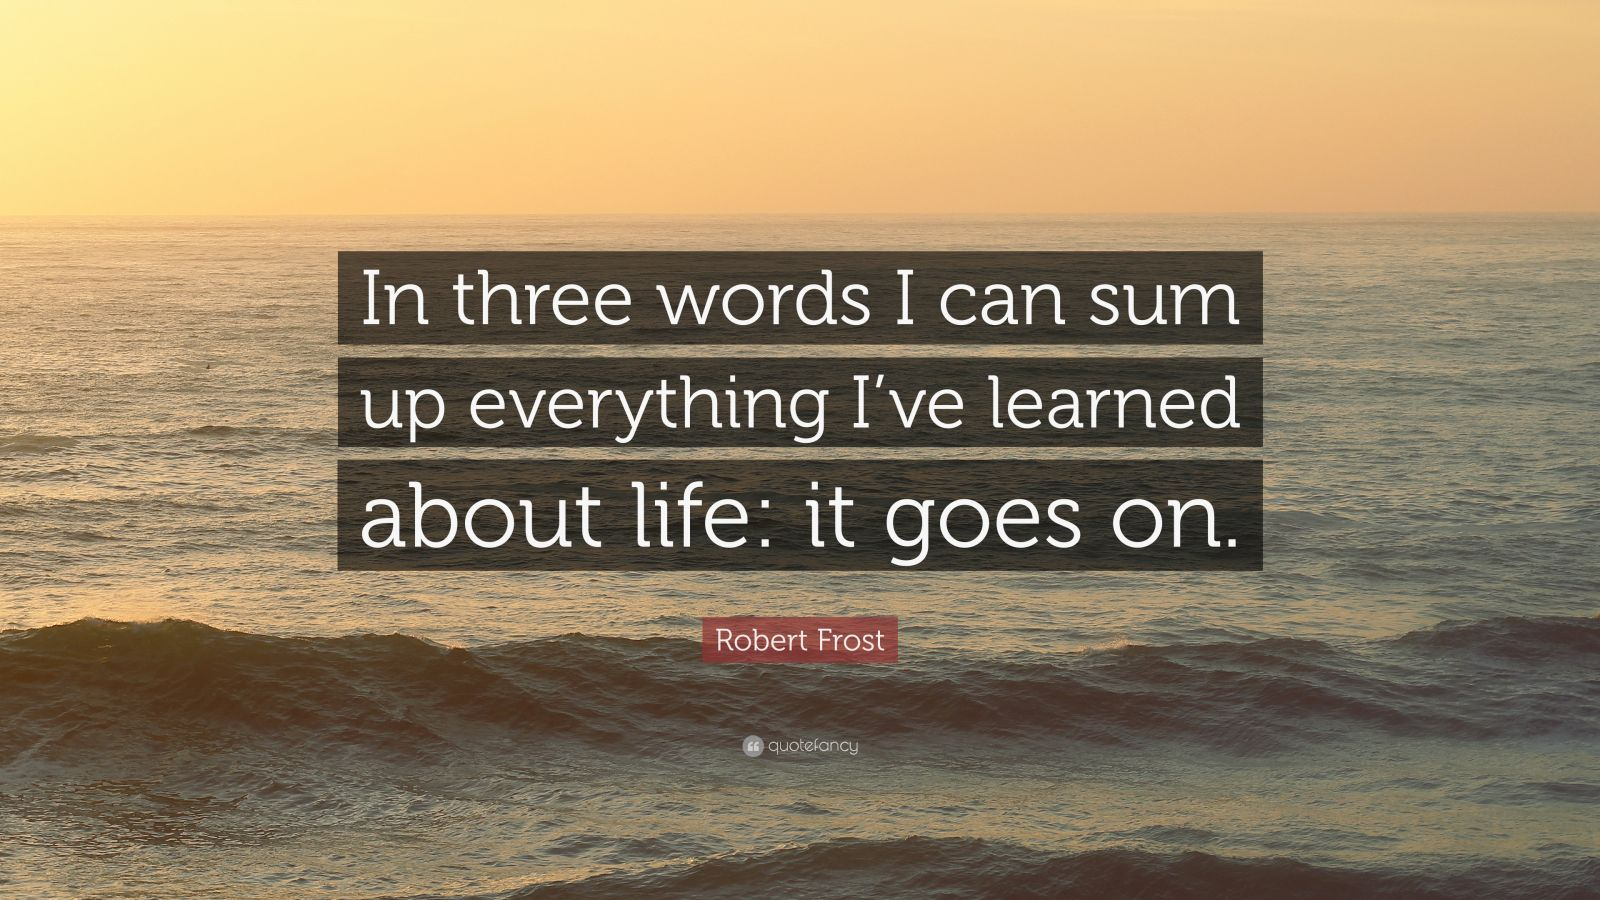 John Lennon Wallpaper Quotes Robert Frost Quote In Three Words I Can Sum Up